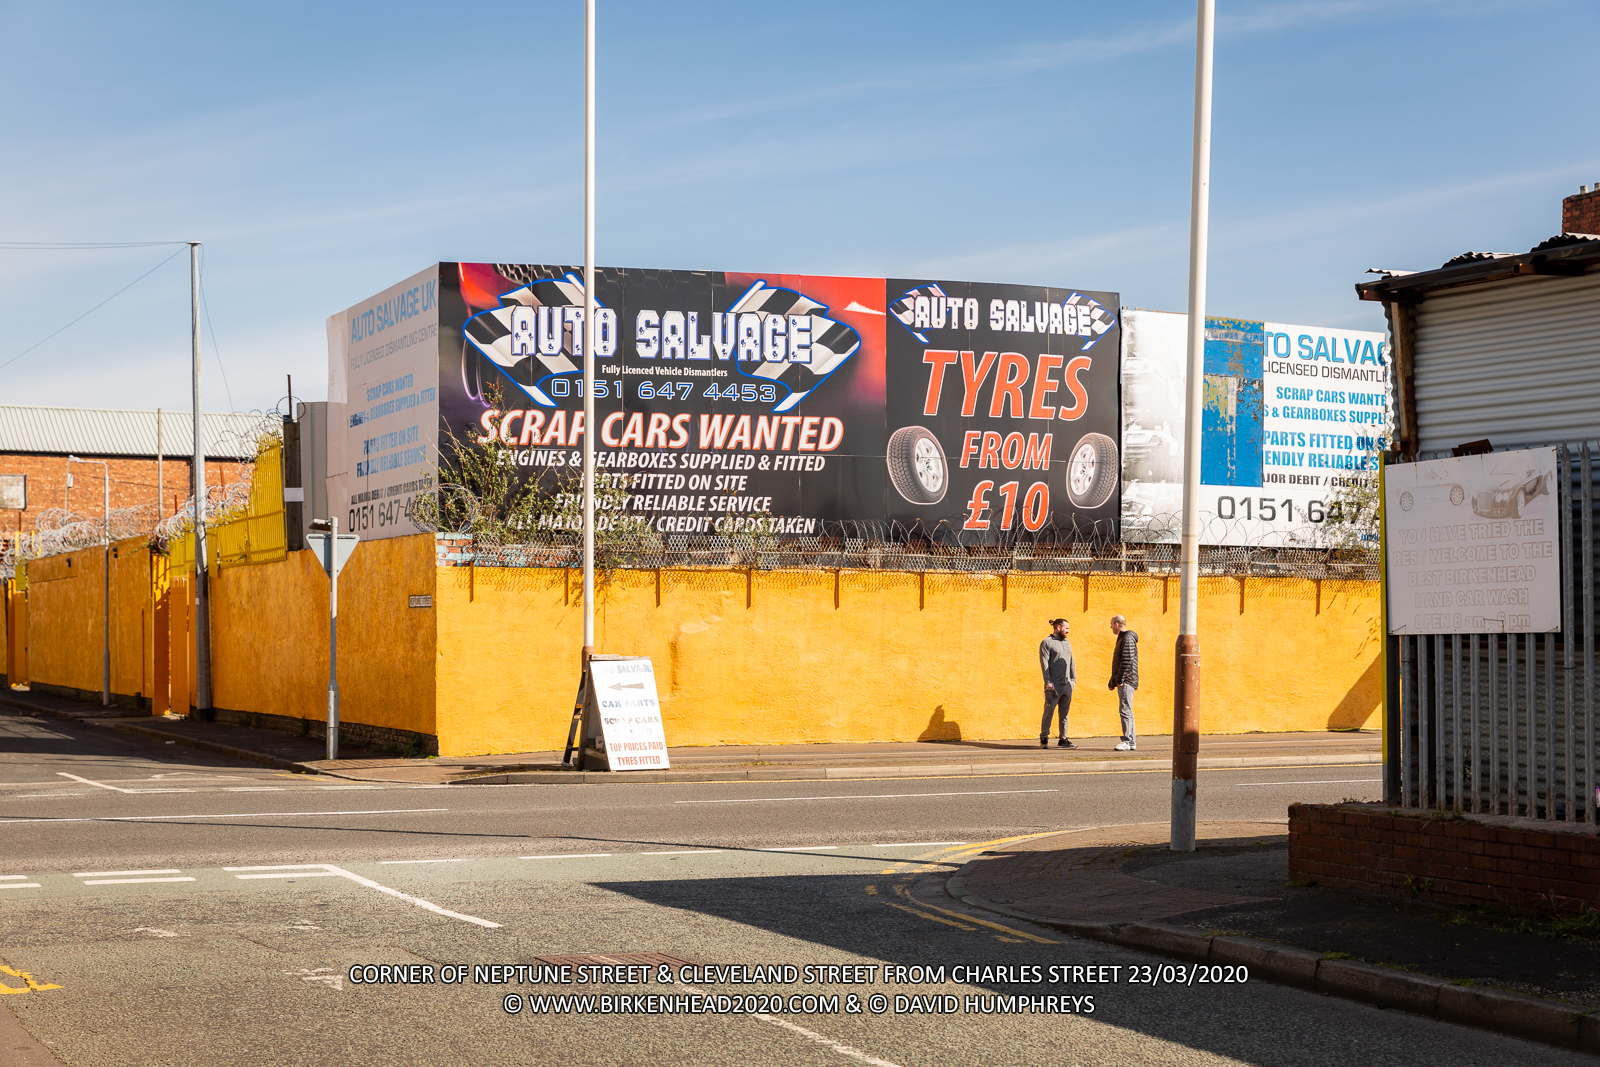 The Birkenhead2020 Project – March Round-up